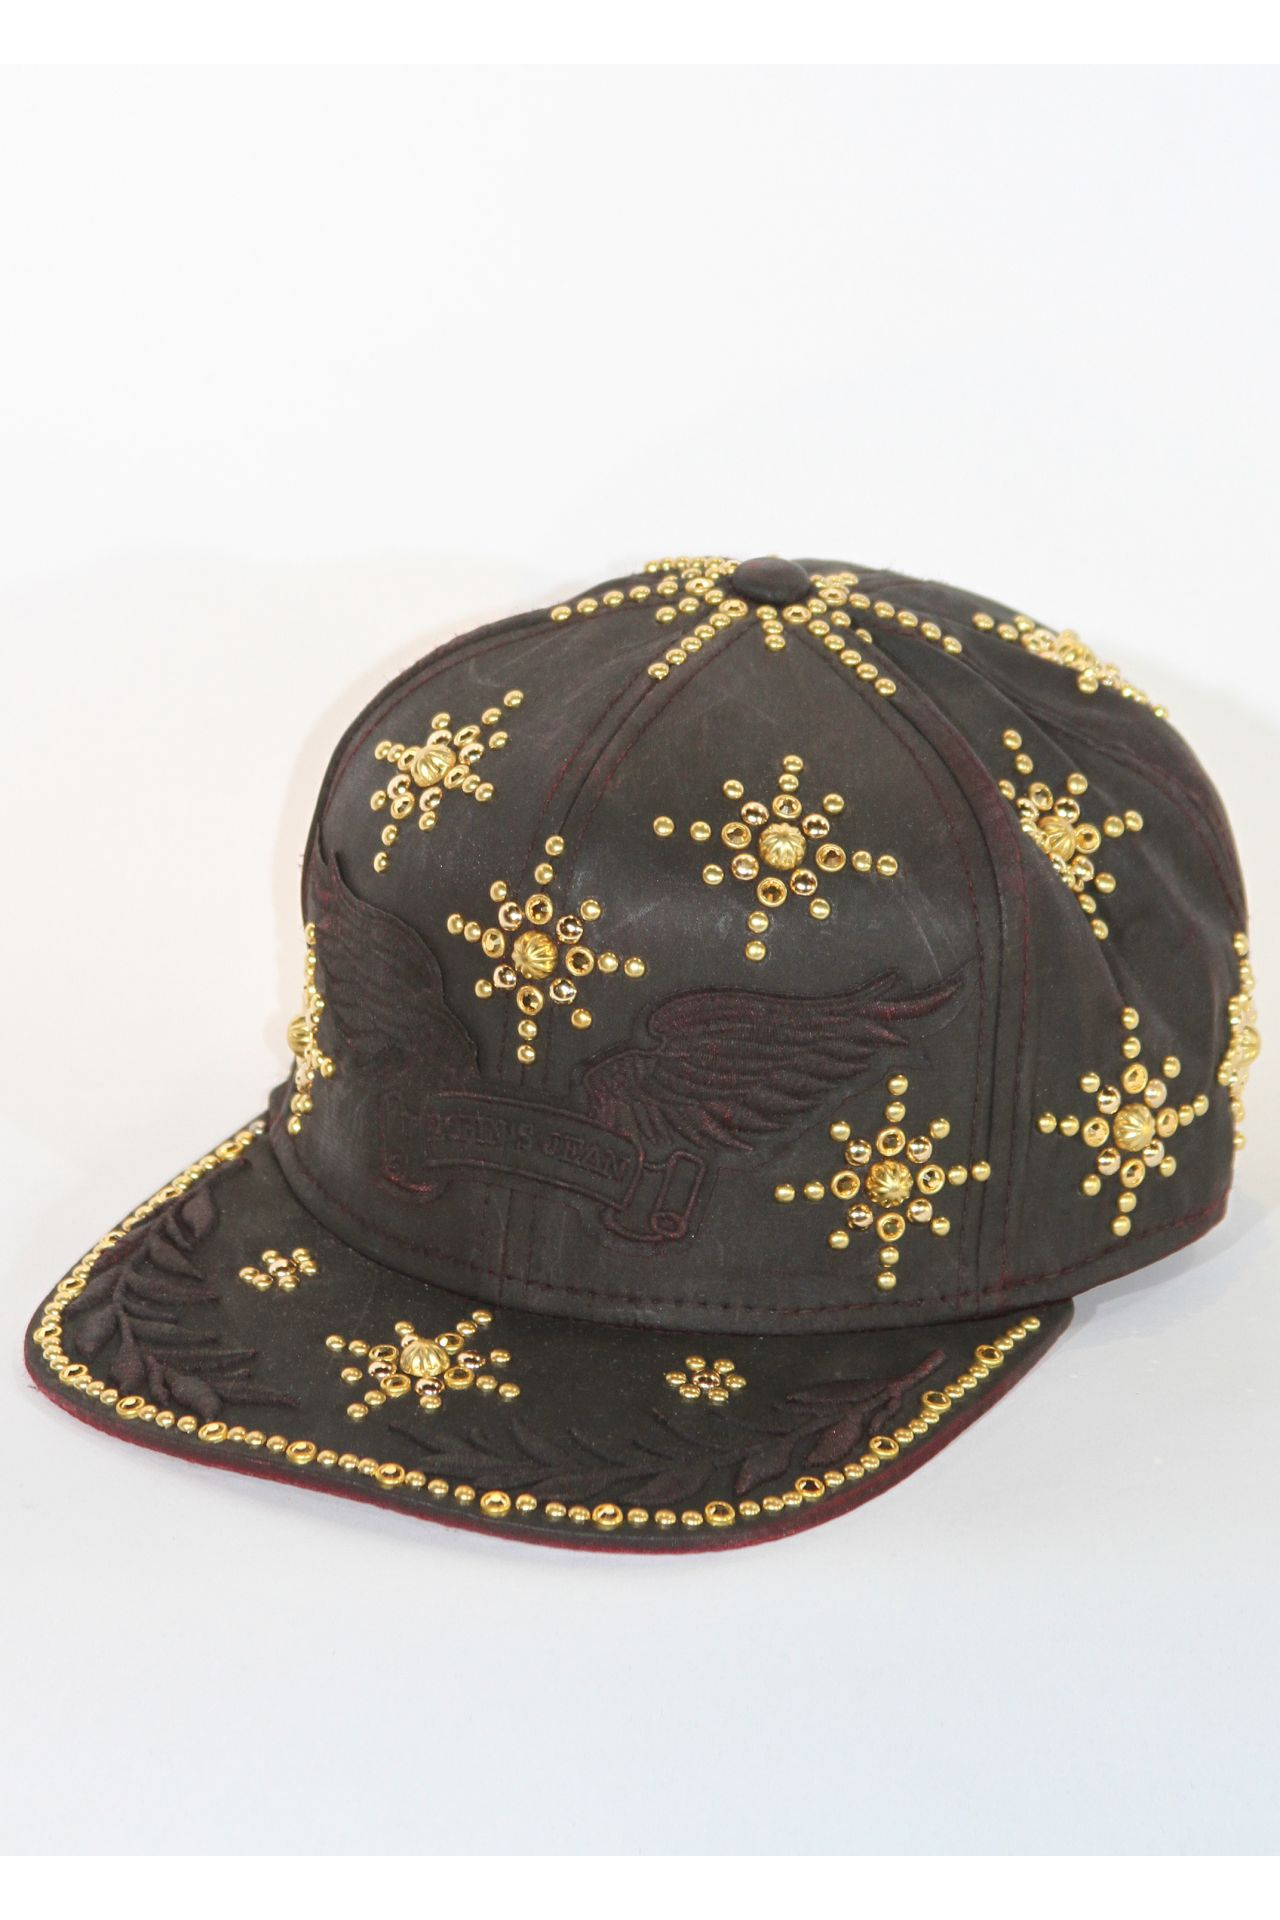 RED CAP HAND-PAINTED IN BLACK WITH GOLD SW